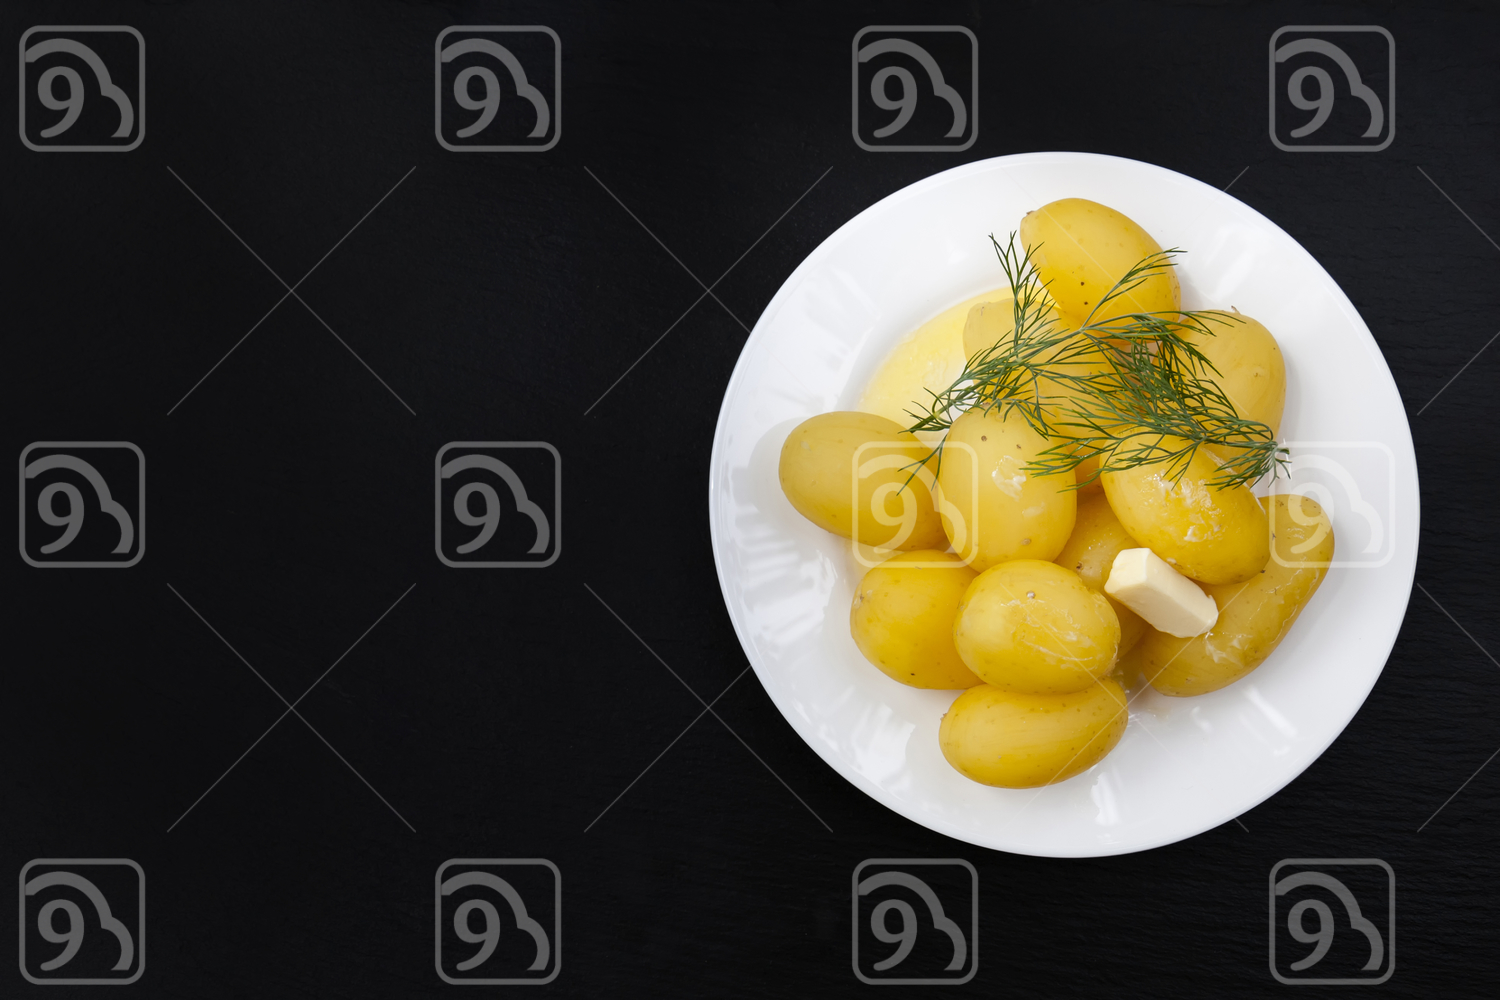 Boiled potatoes in white plate